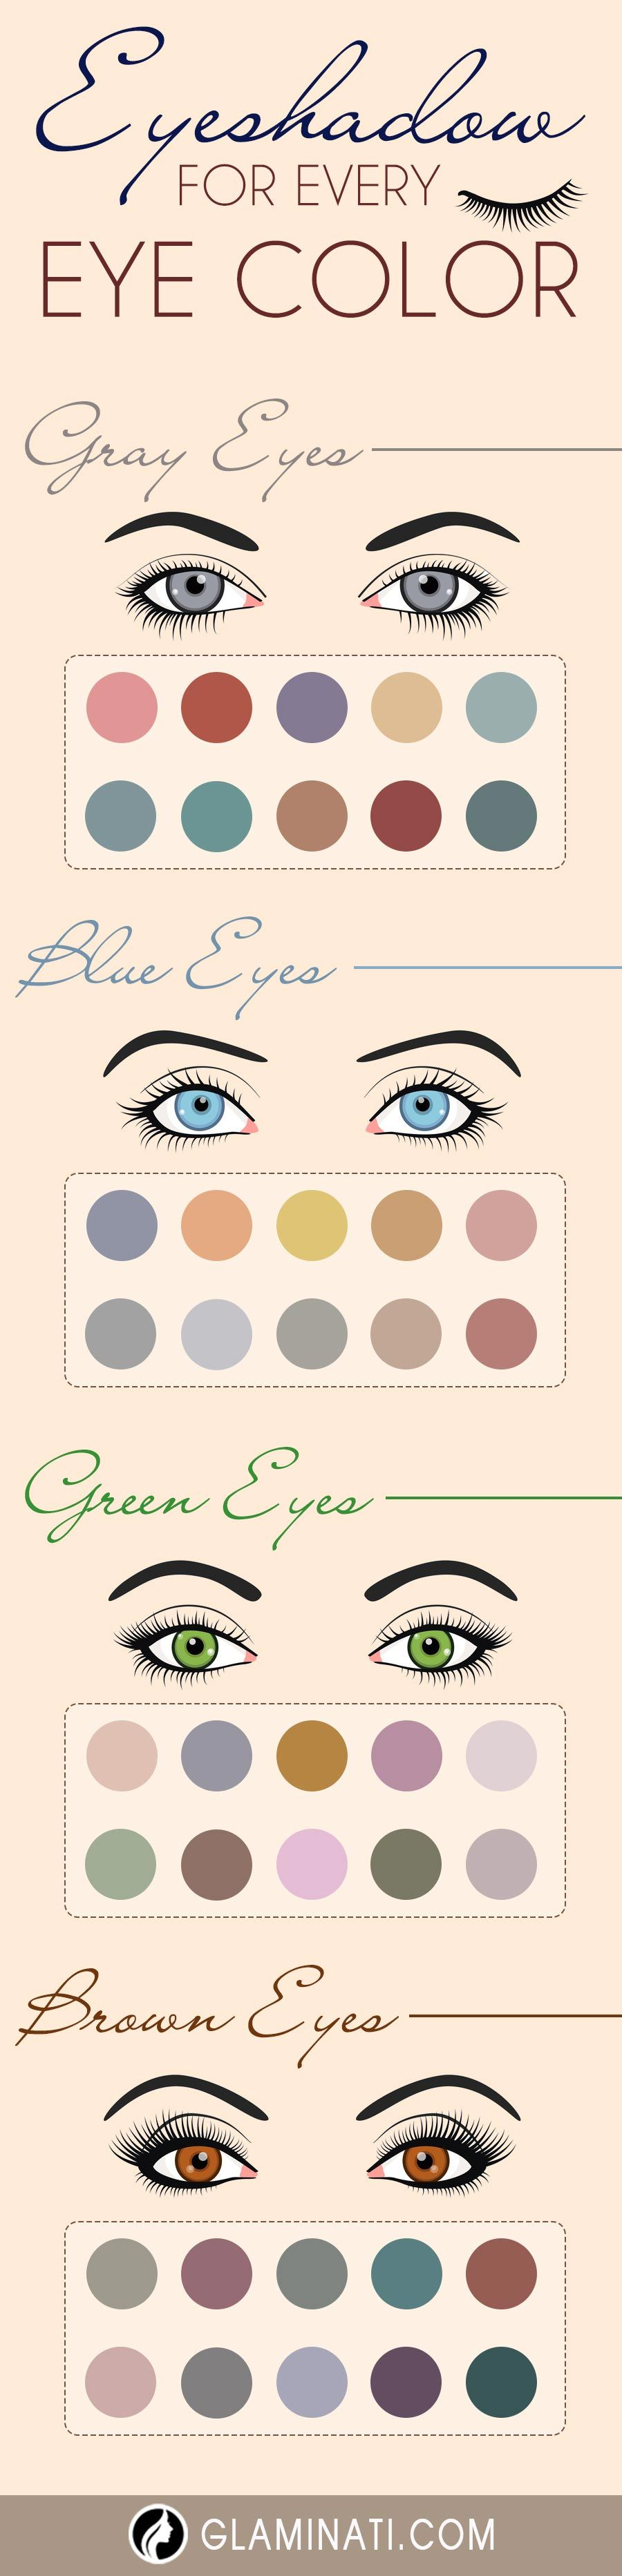 gray eyes: which fact is true or false? | magical makeup